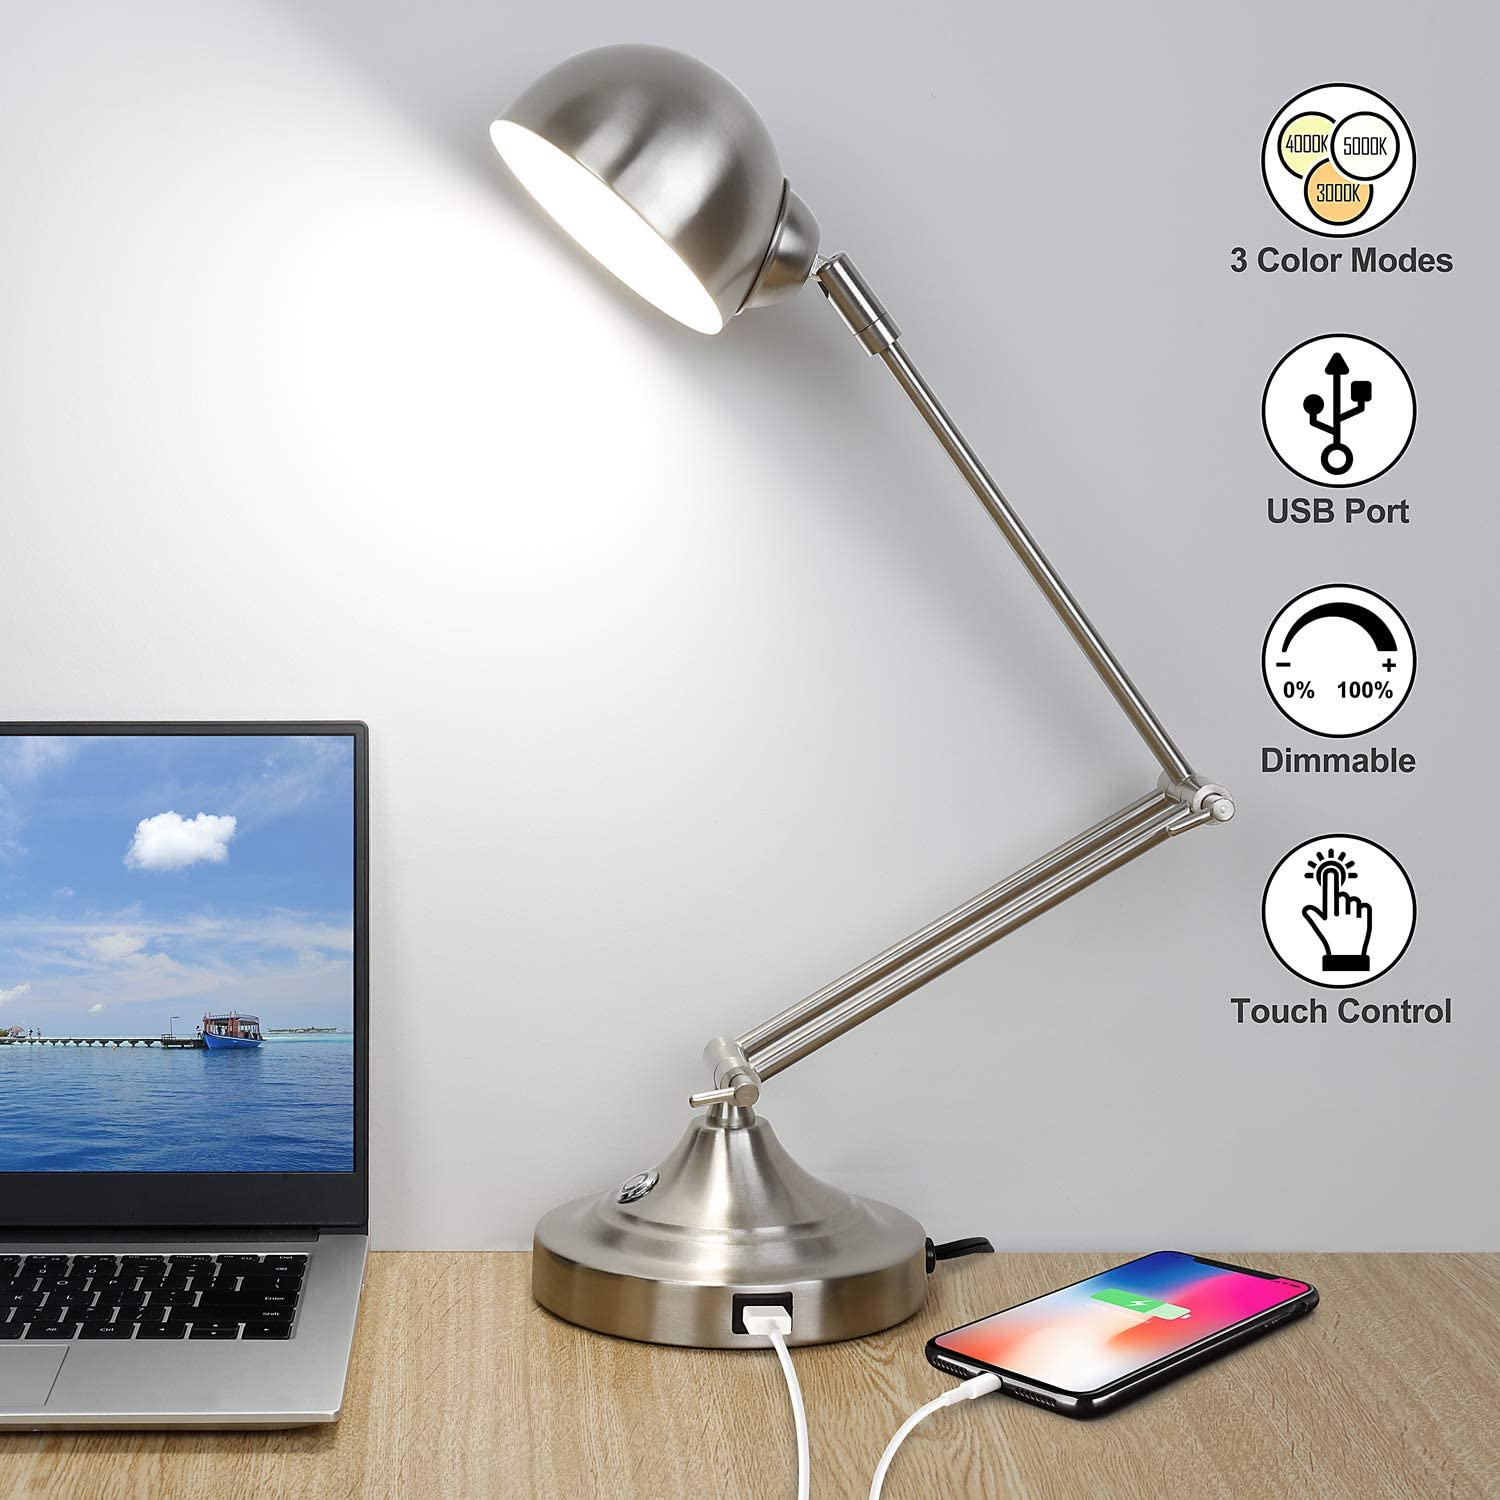 LED Desk Lamp with USB Charging Port, 3 Color Modes, Fully Dimmable, Swing Arm Task Lamp, Touch Control Nickel Metal Architect Drafting Table Lamp for Bedside, Office, Work, Reading -Eye-Caring